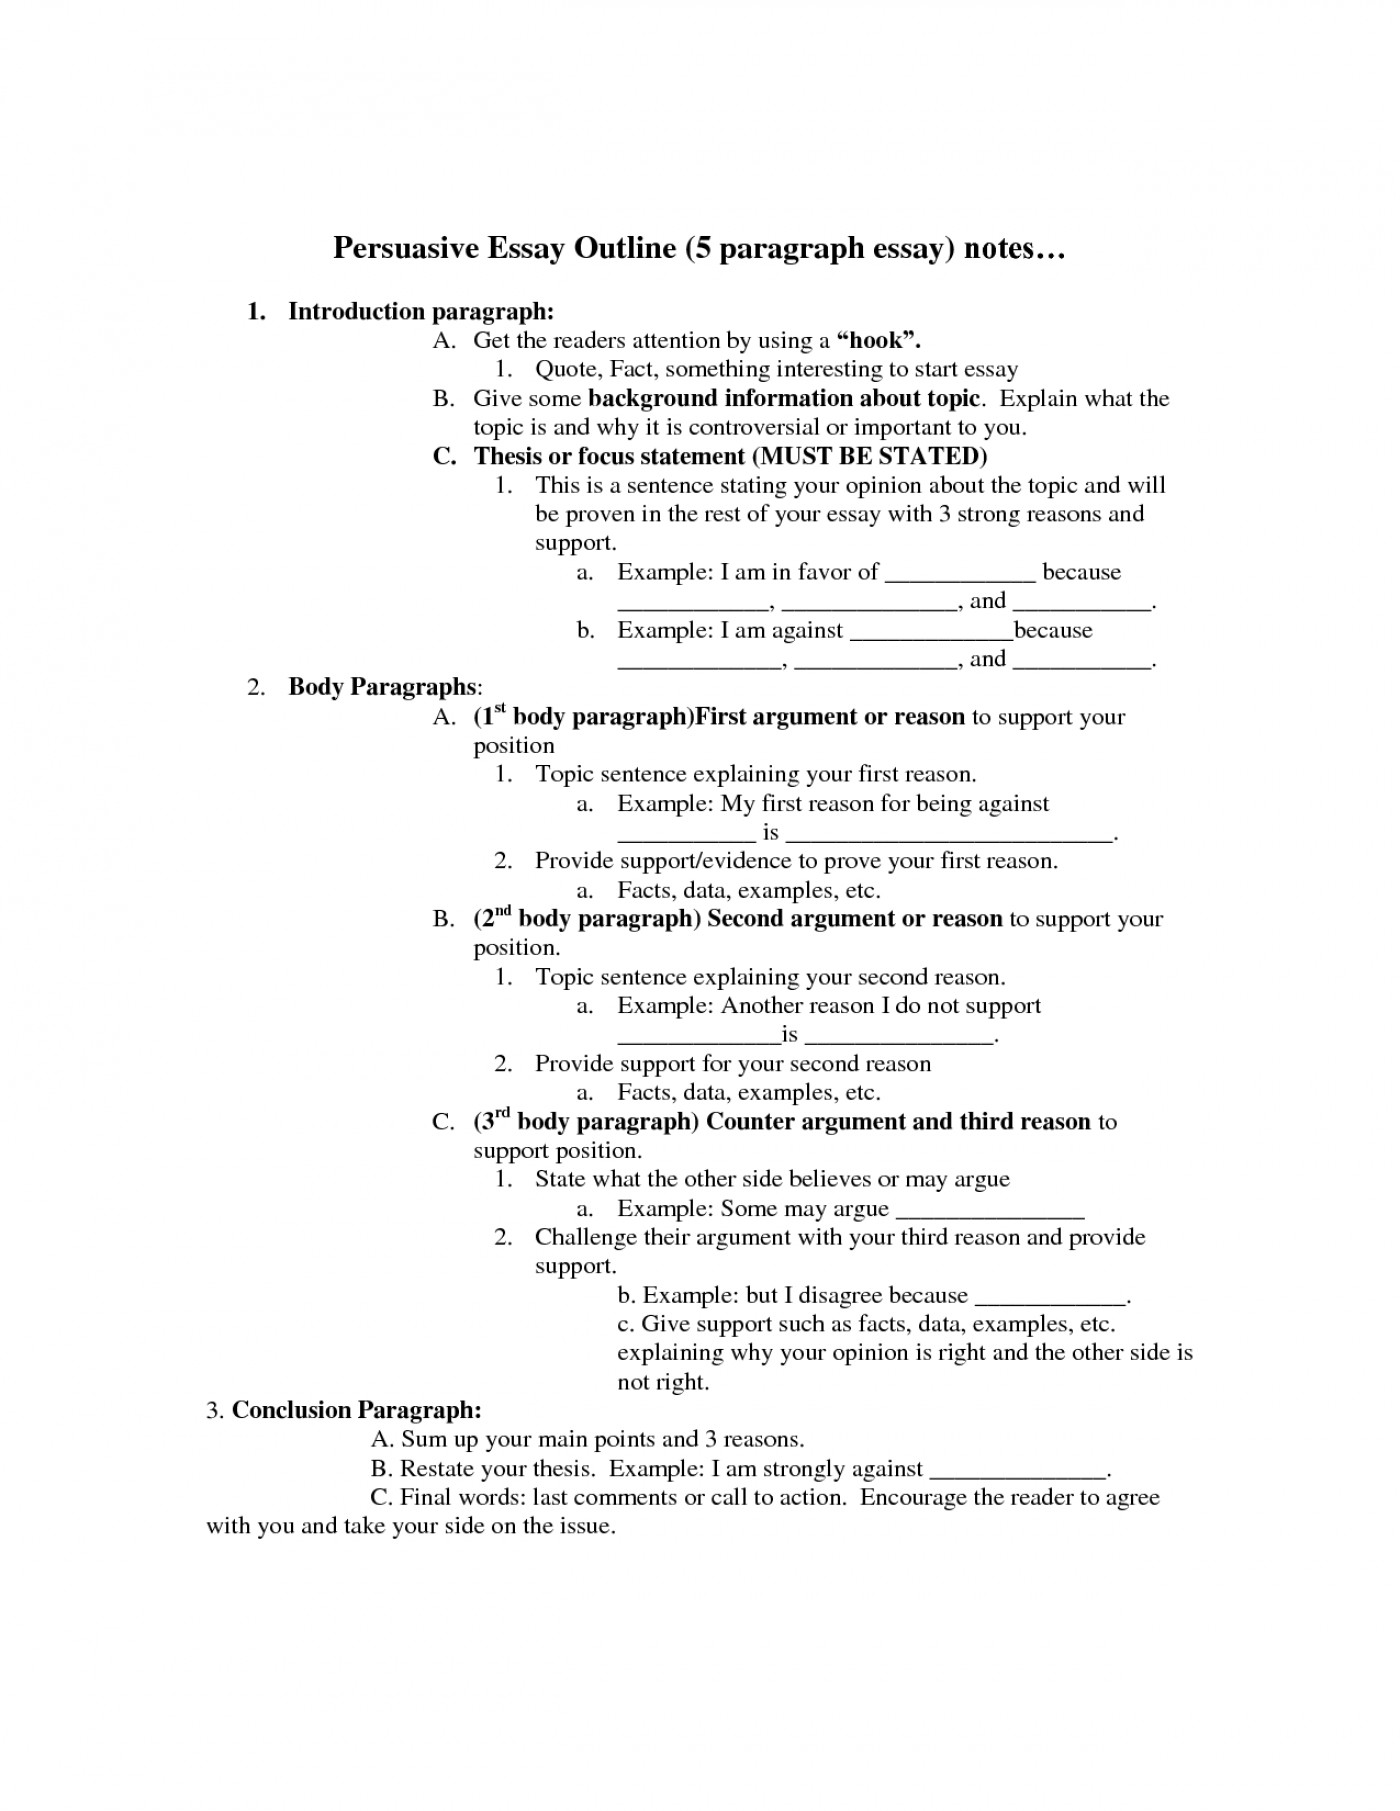 006 Persuasive Essay Outline Unbelievable Argumentative 5th Grade Template Pdf 1400